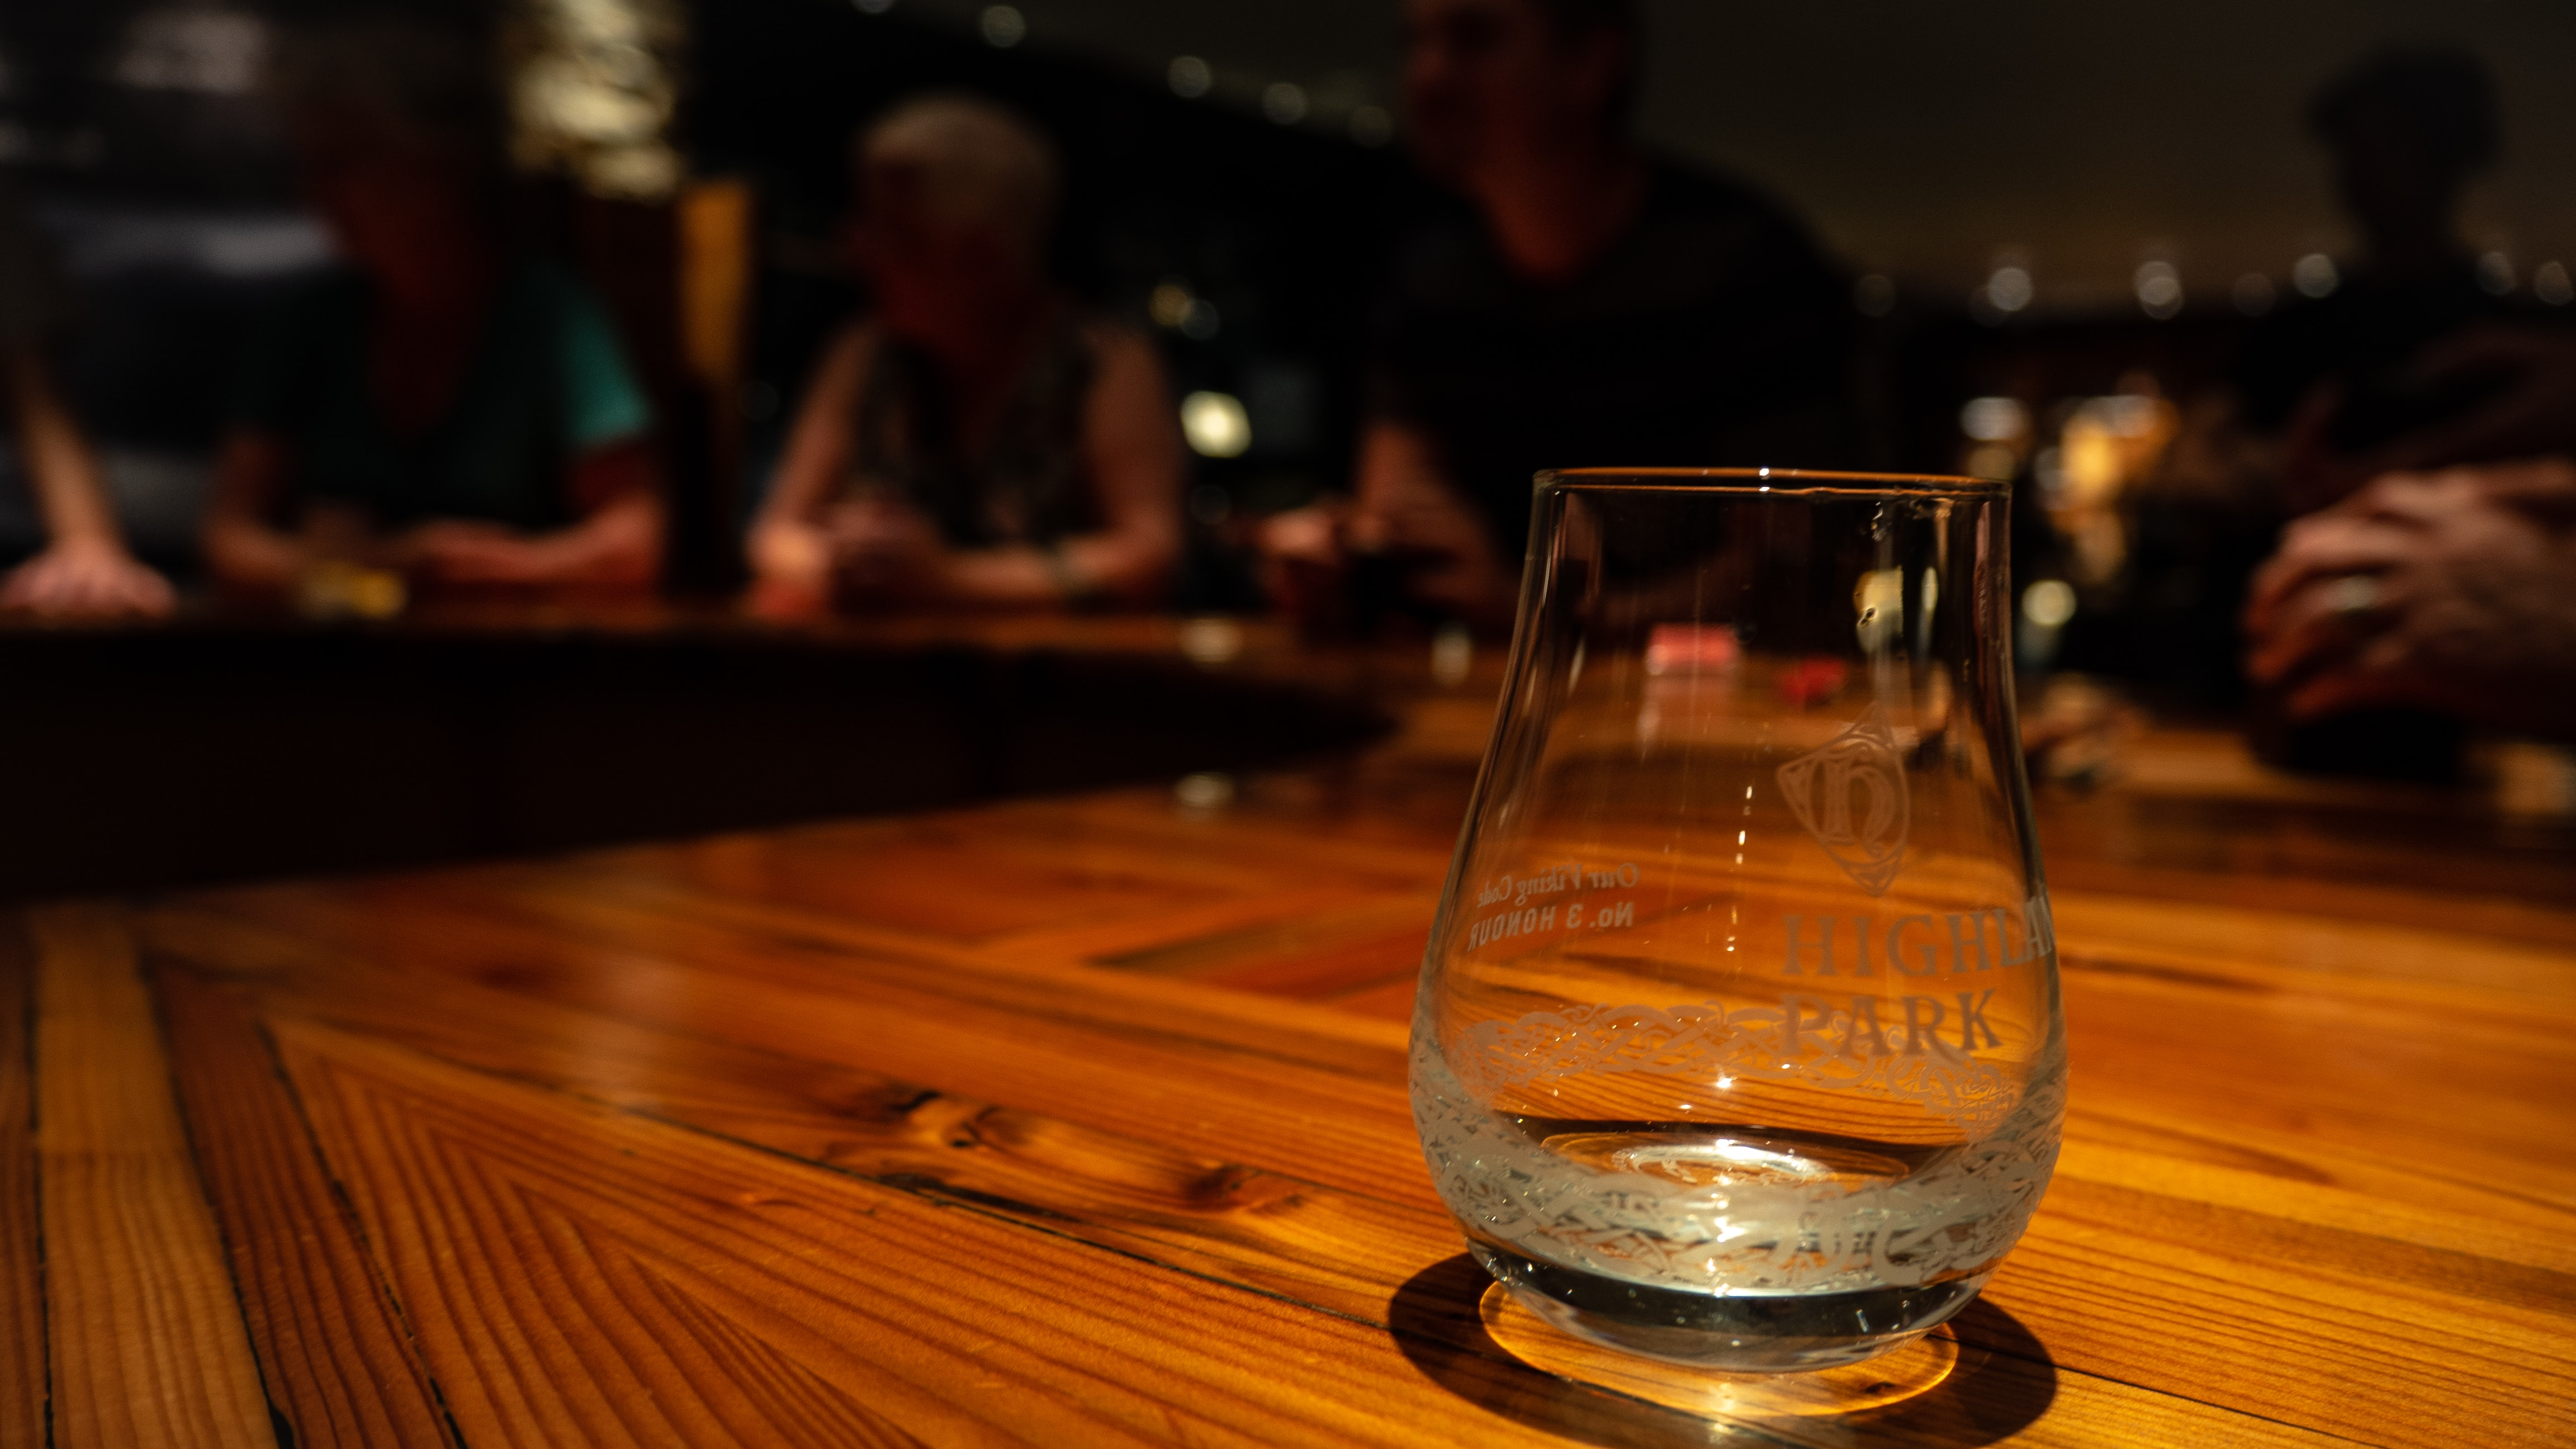 shallow focus photography of clear drinking glass on brown wooden table